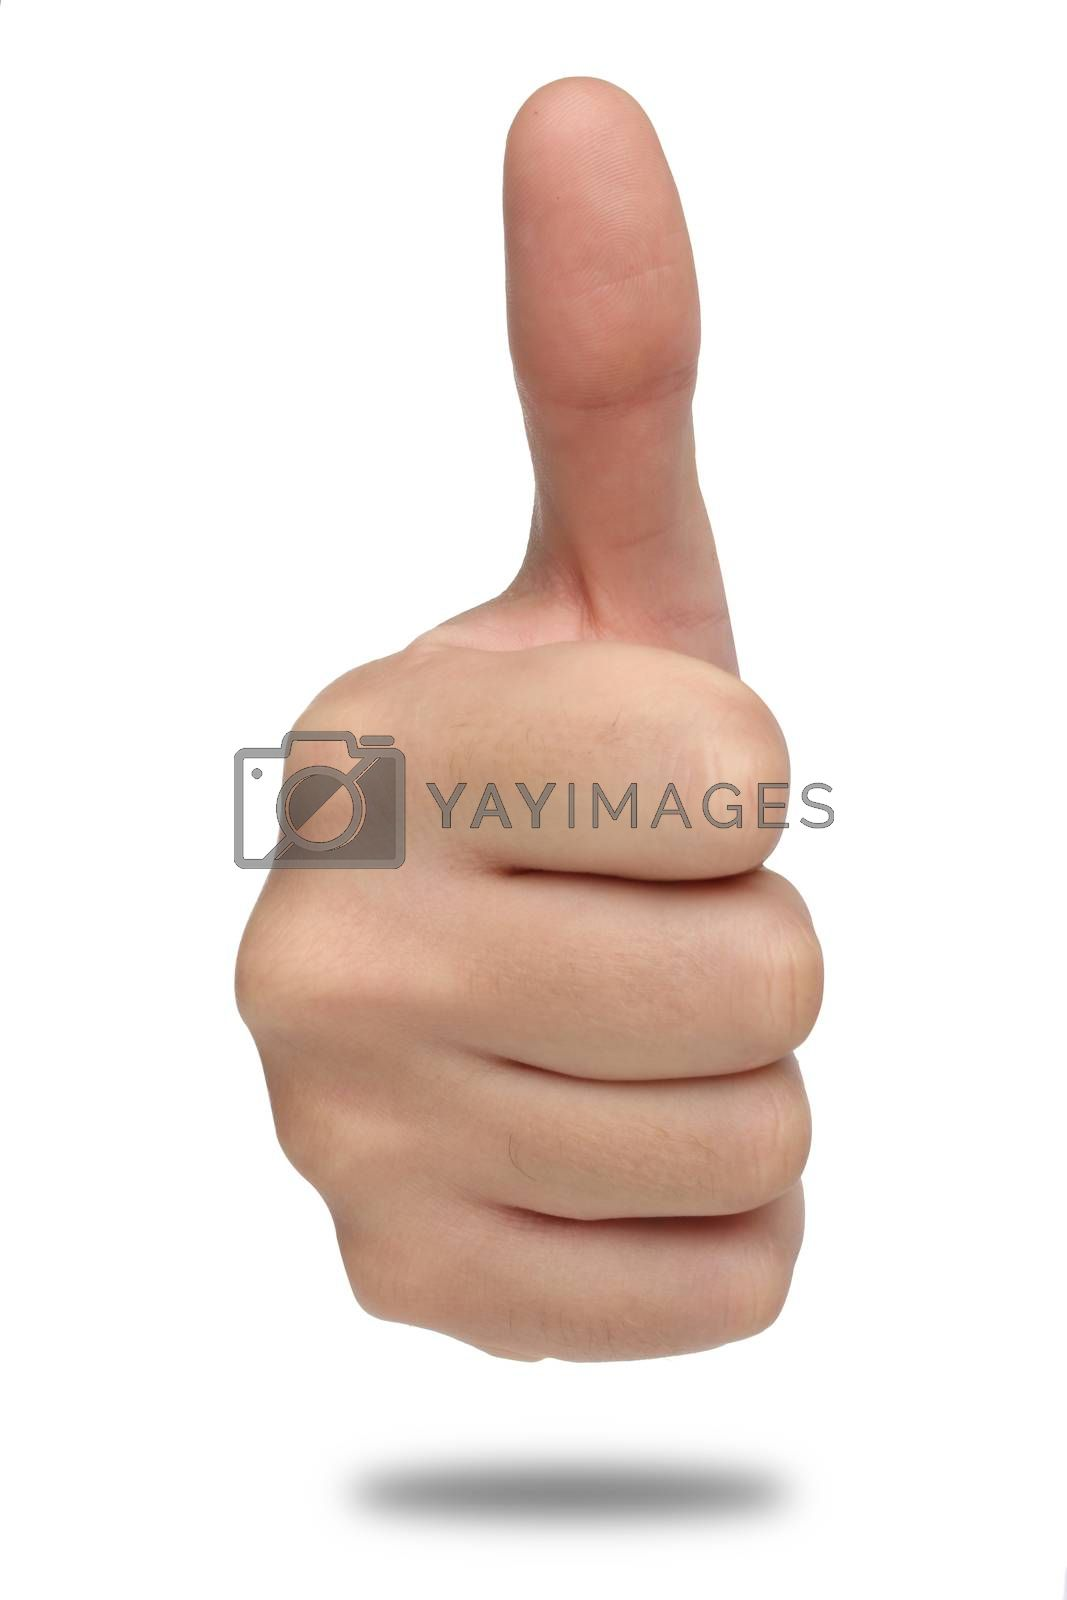 Royalty free image of Male hand sign with thumb up by Erdosain